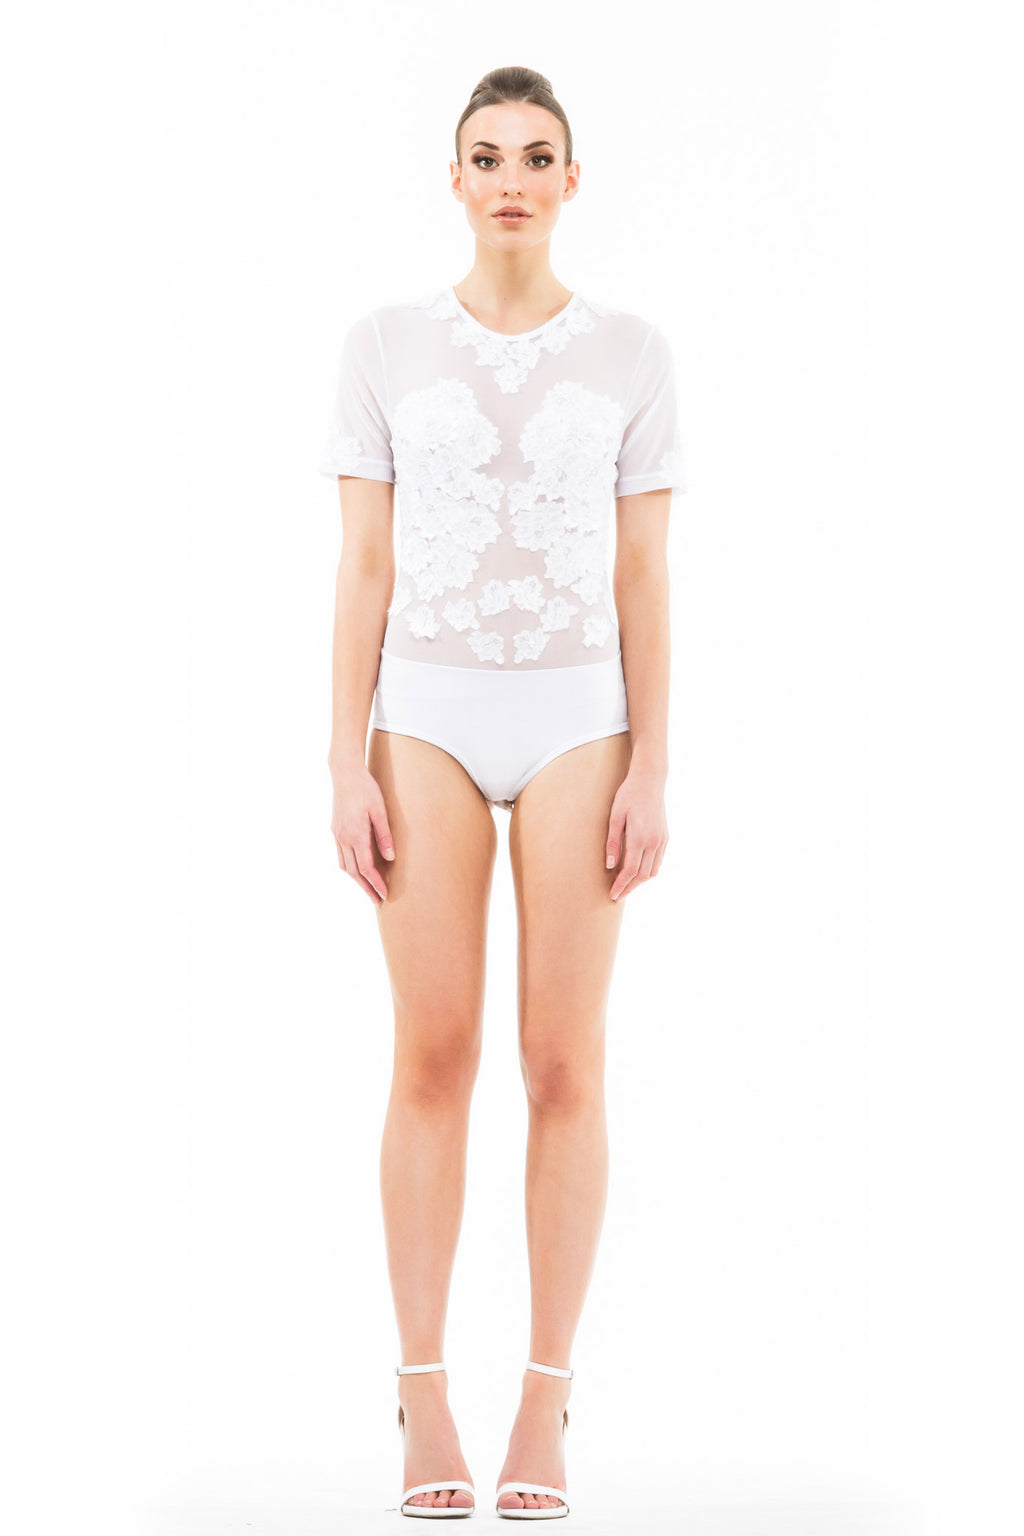 Ethereal Bodysuit - White